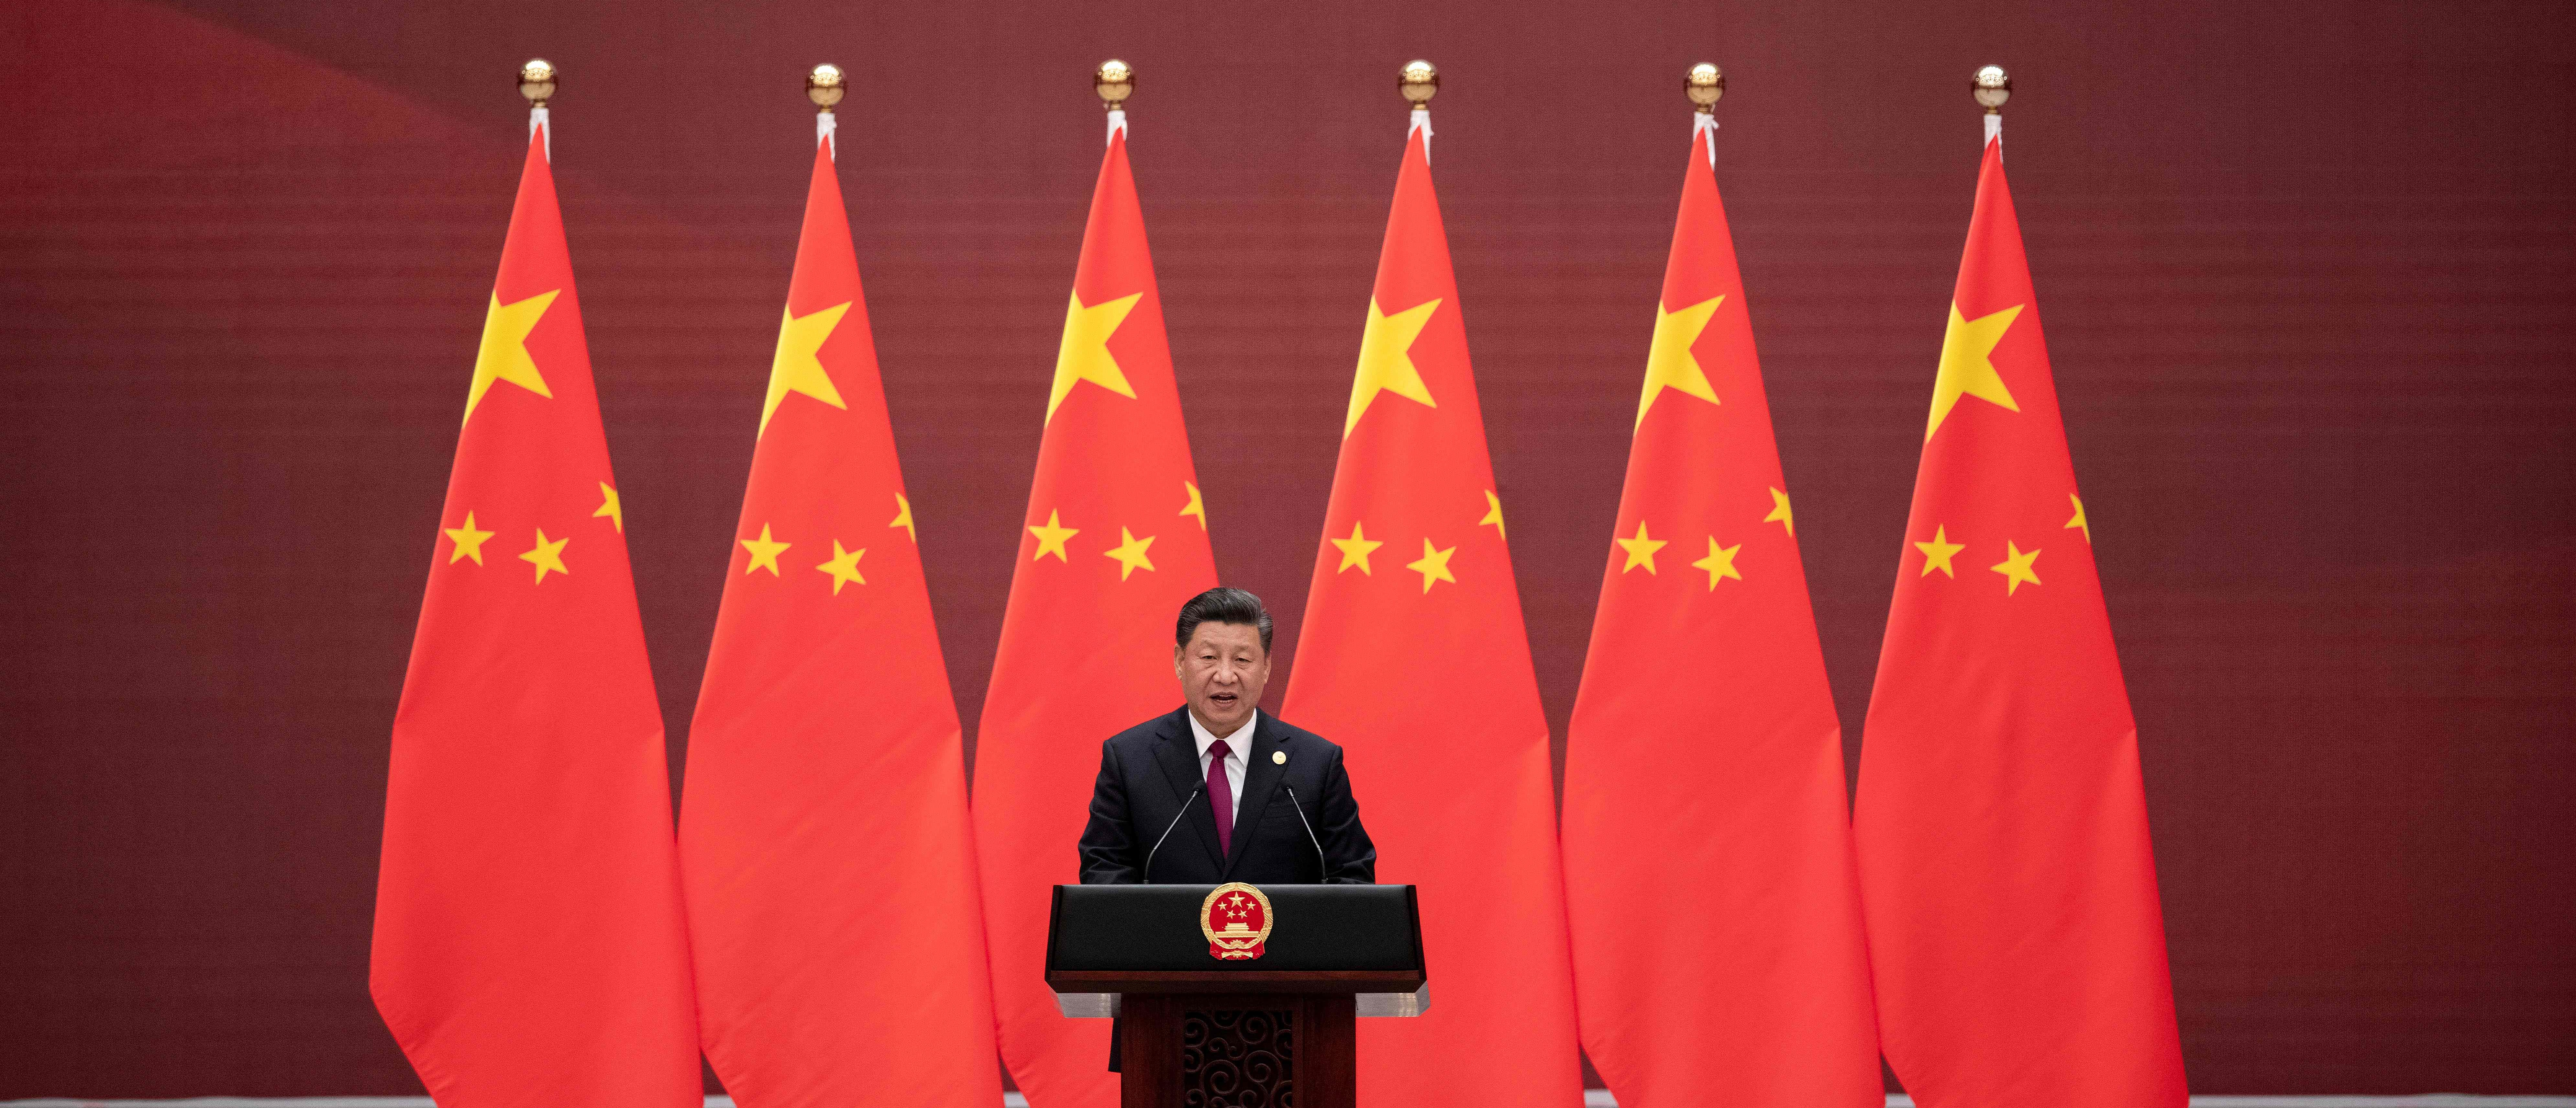 China's President Xi Jinping gives a speech during the welcome banquet for leaders attending the Belt and Road Forum at the Great Hall of the People in Beijing on April 26, 2019. (Photo: NICOLAS ASFOURI/AFP via Getty Images)